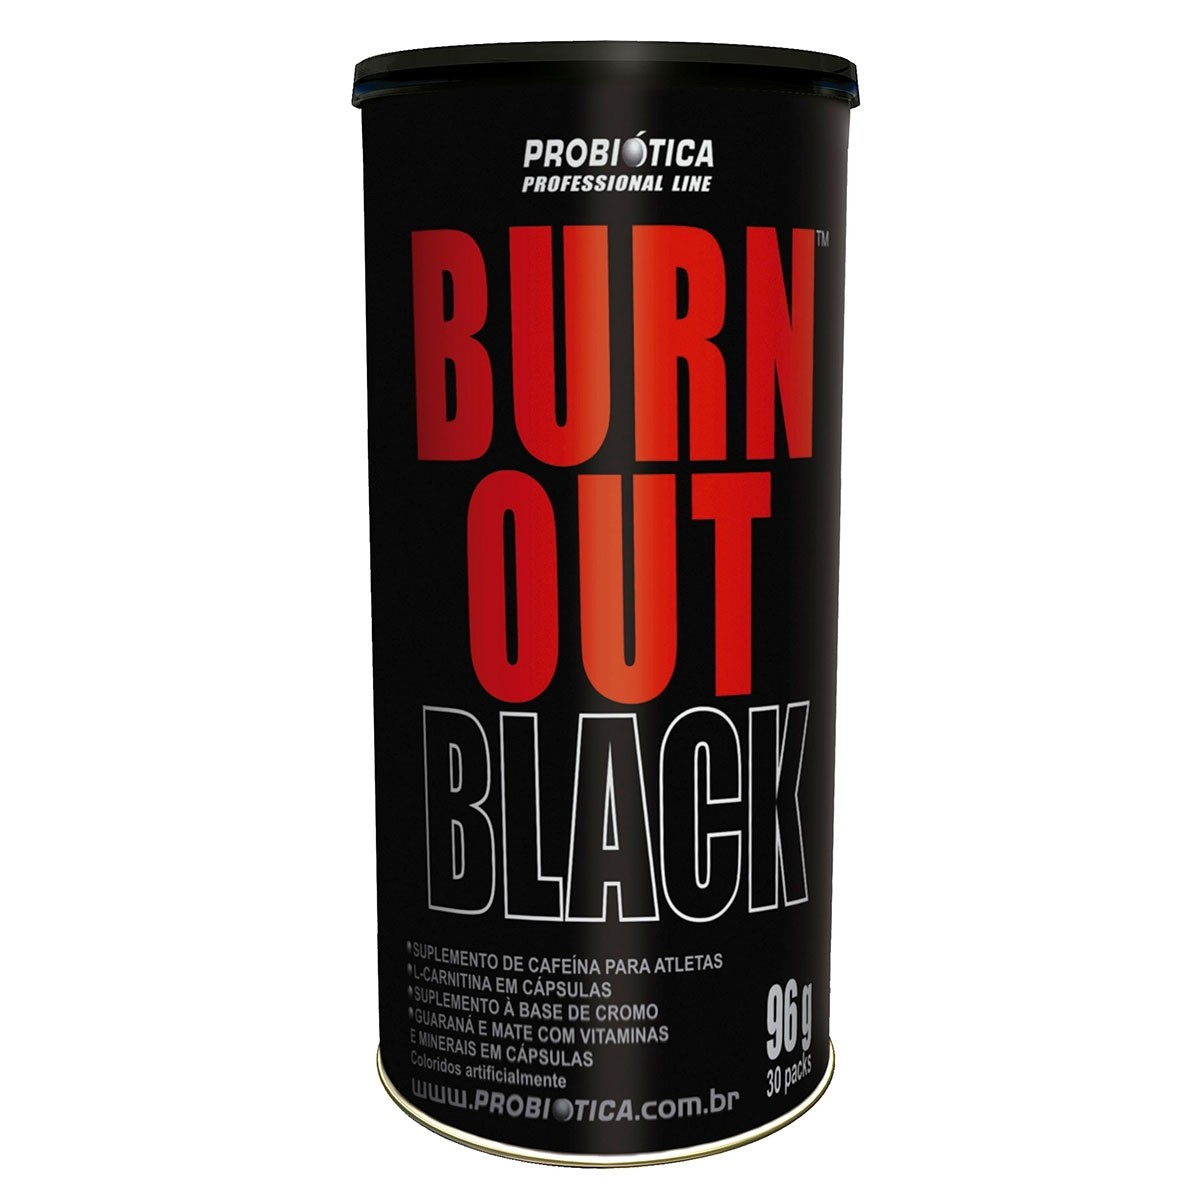 Burn Out Black 30 Packs Probiótica